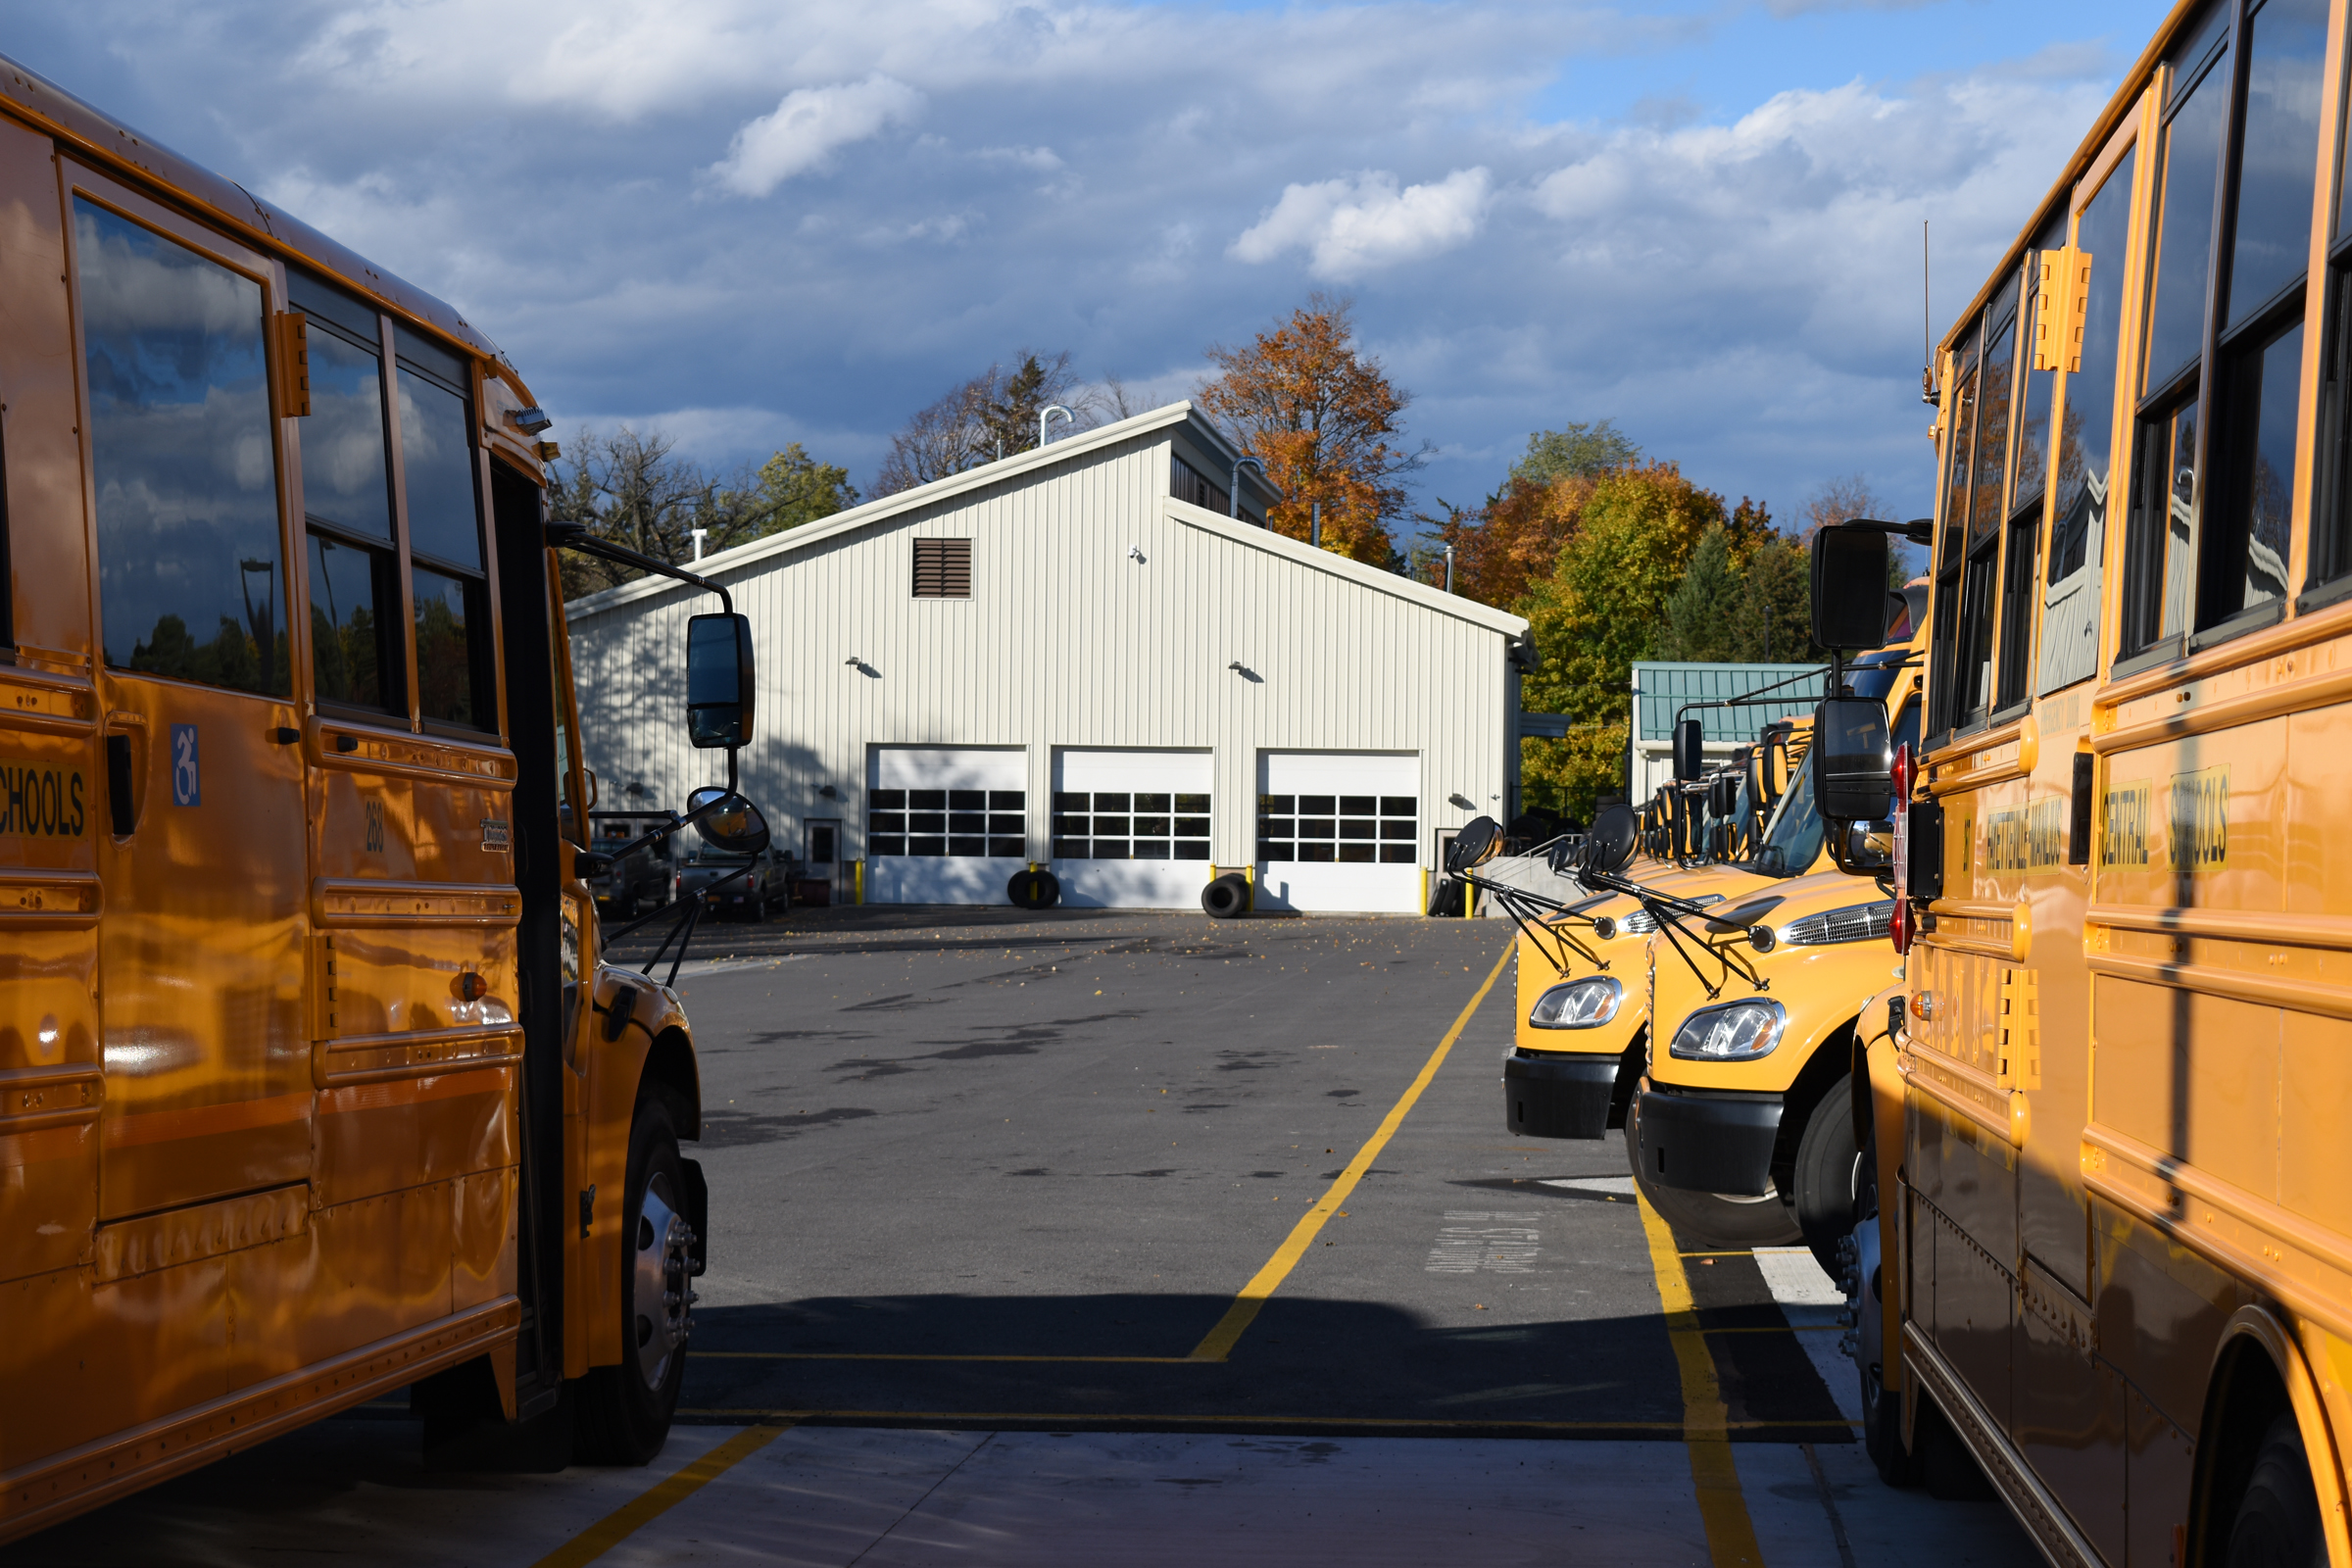 Fayetteville-Manlius Central School District Bus Garage Exterior